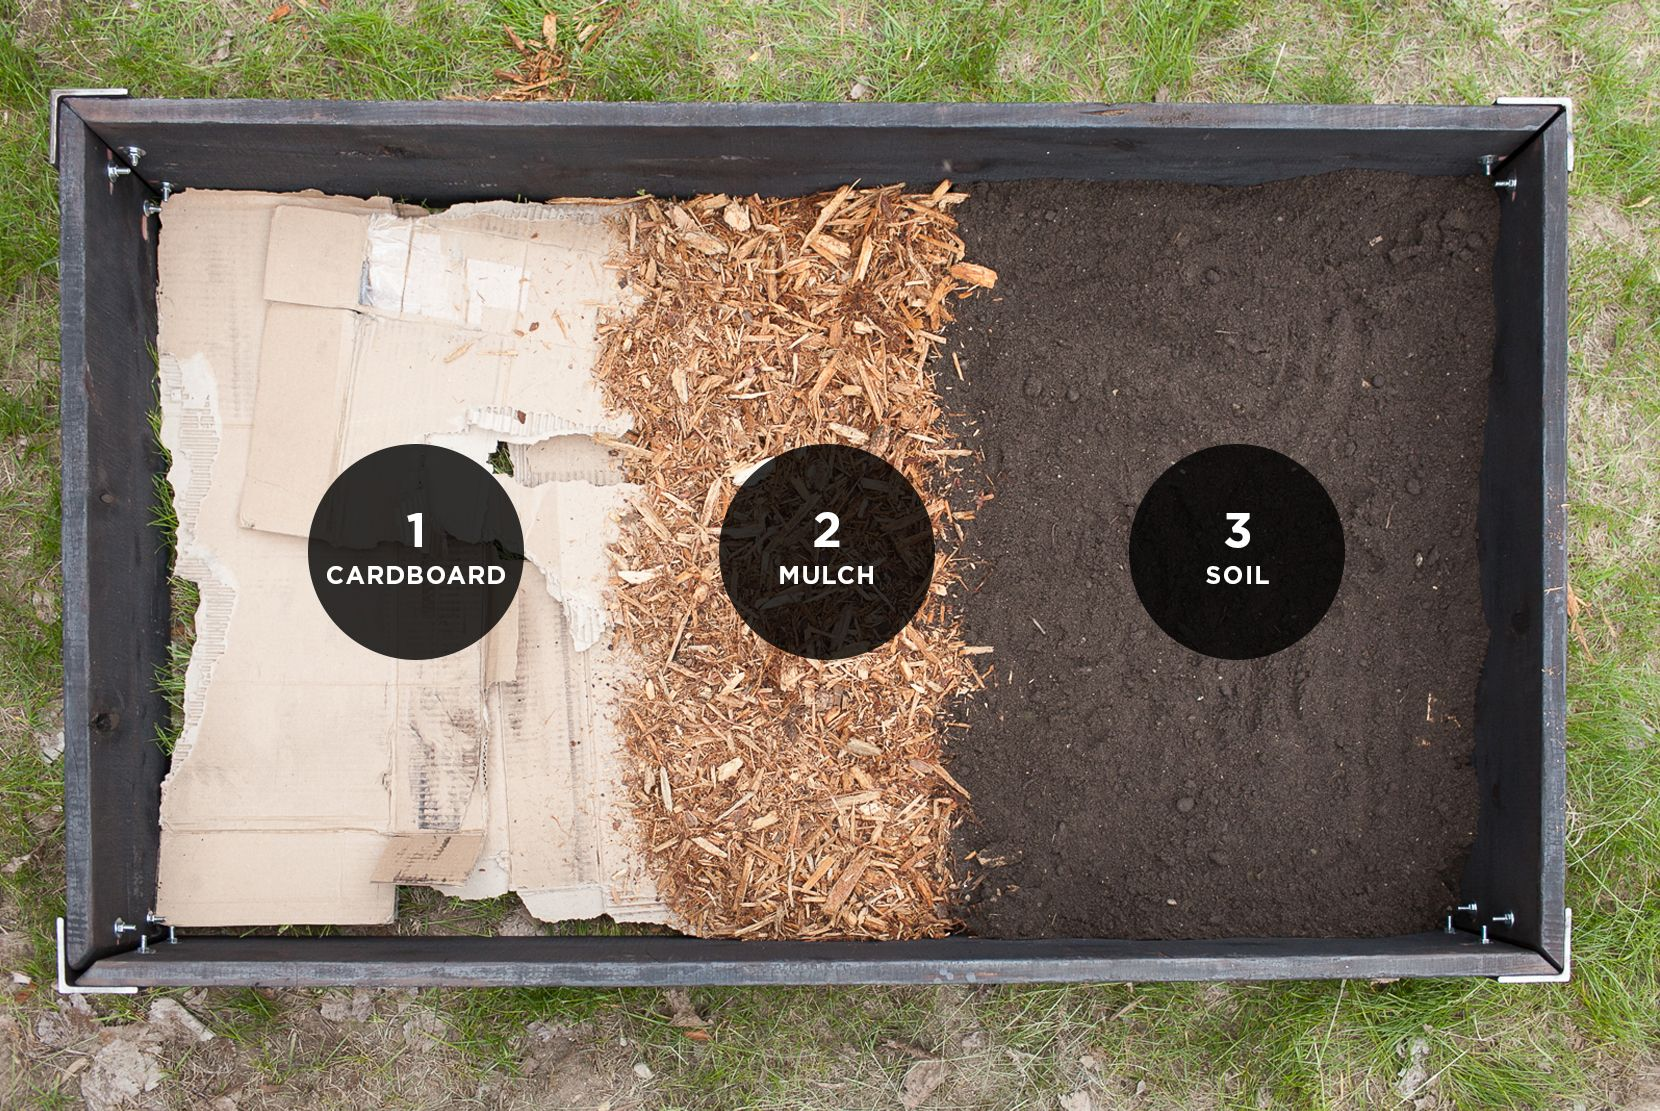 How To Layer Your Raised Bed For Your Garden Garden Bed Layout